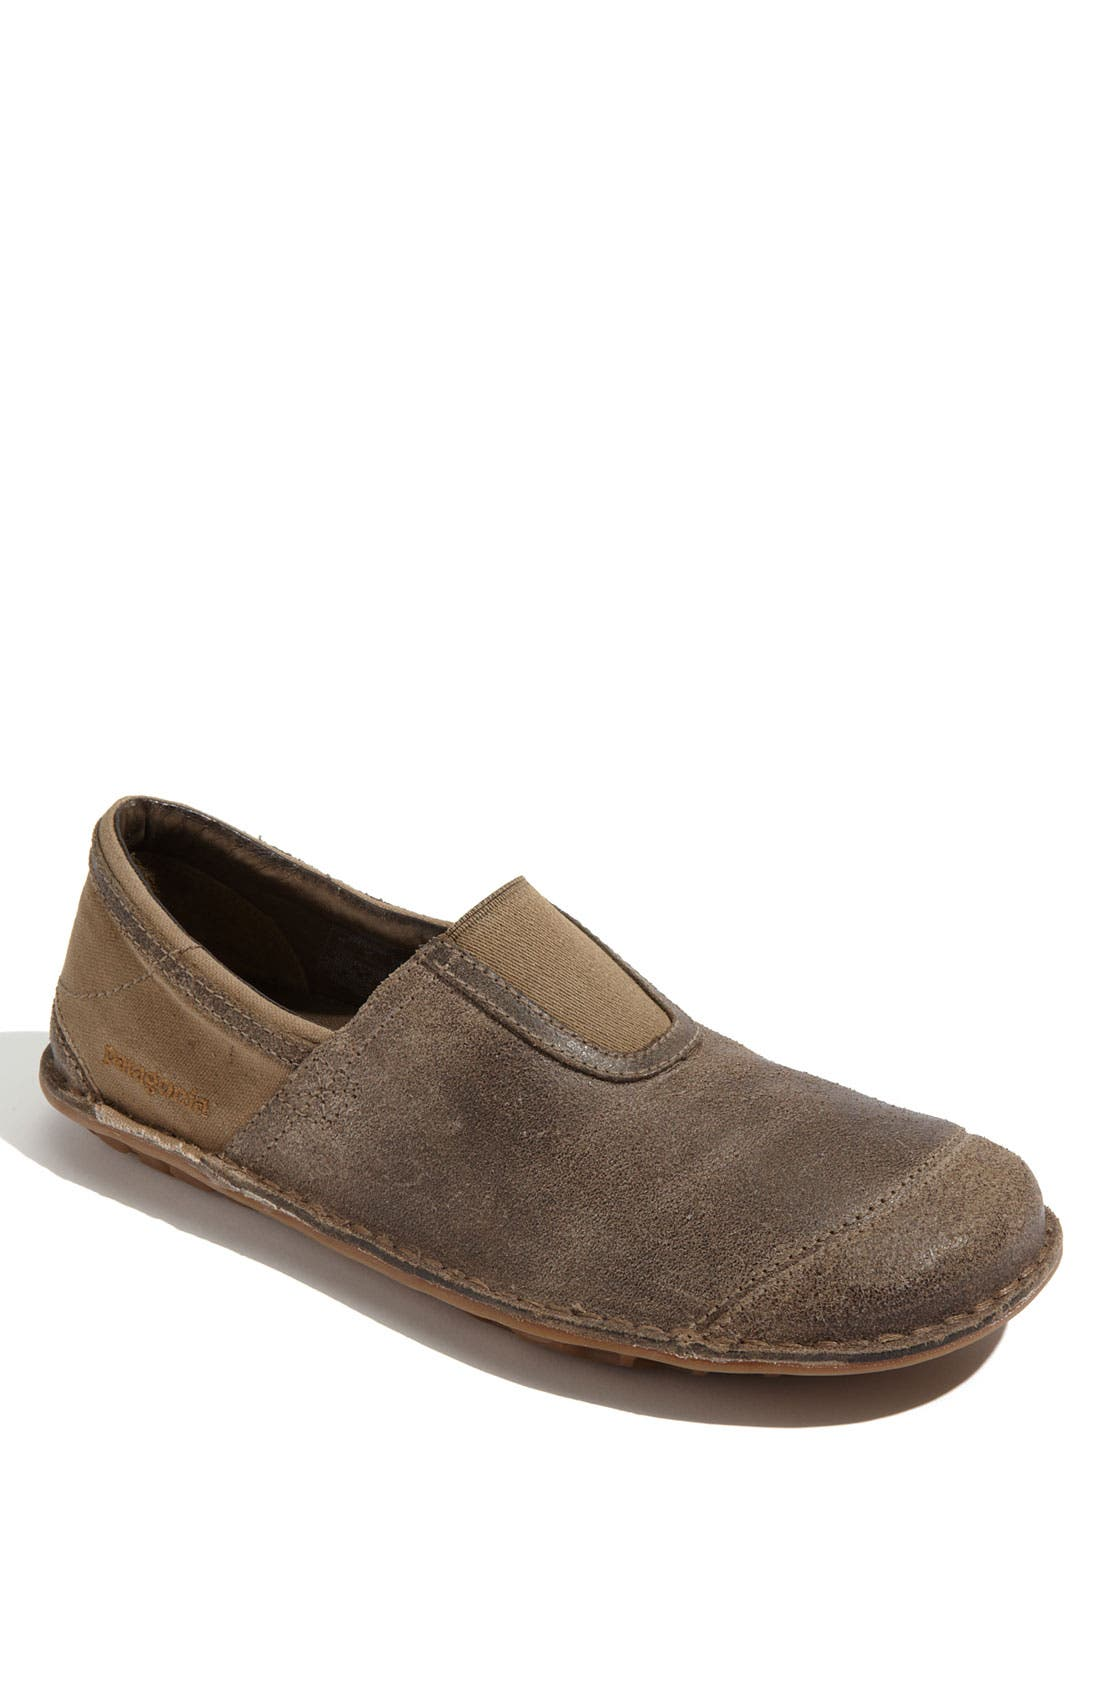 Main Image - Patagonia 'Manawa' Slip-On (Online Only)